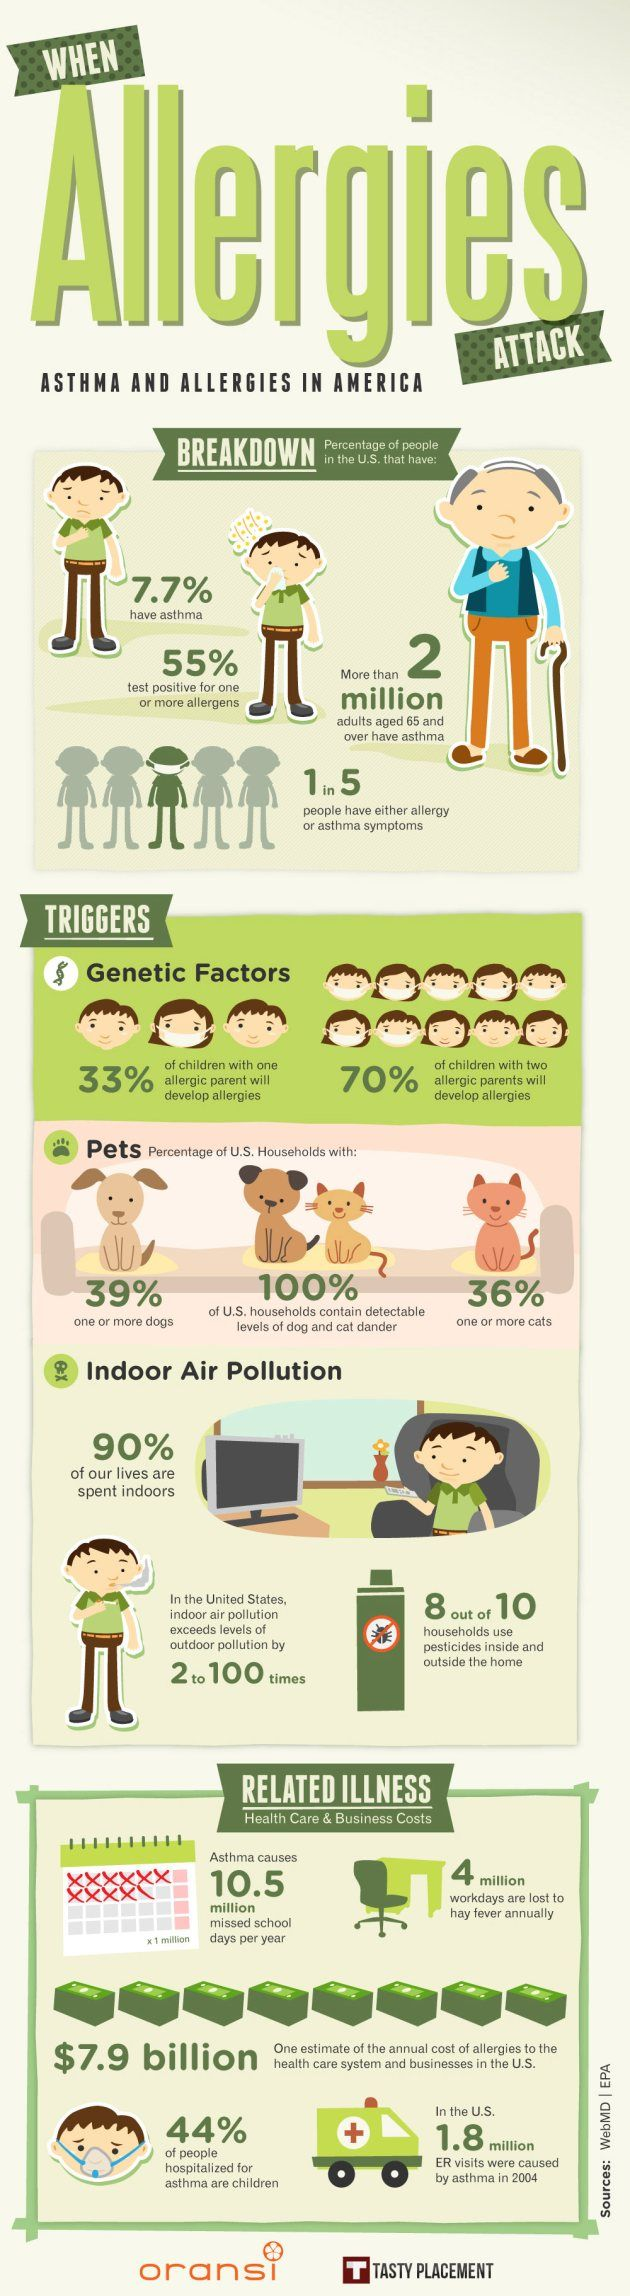 Asthma and Allergies in America Infographic